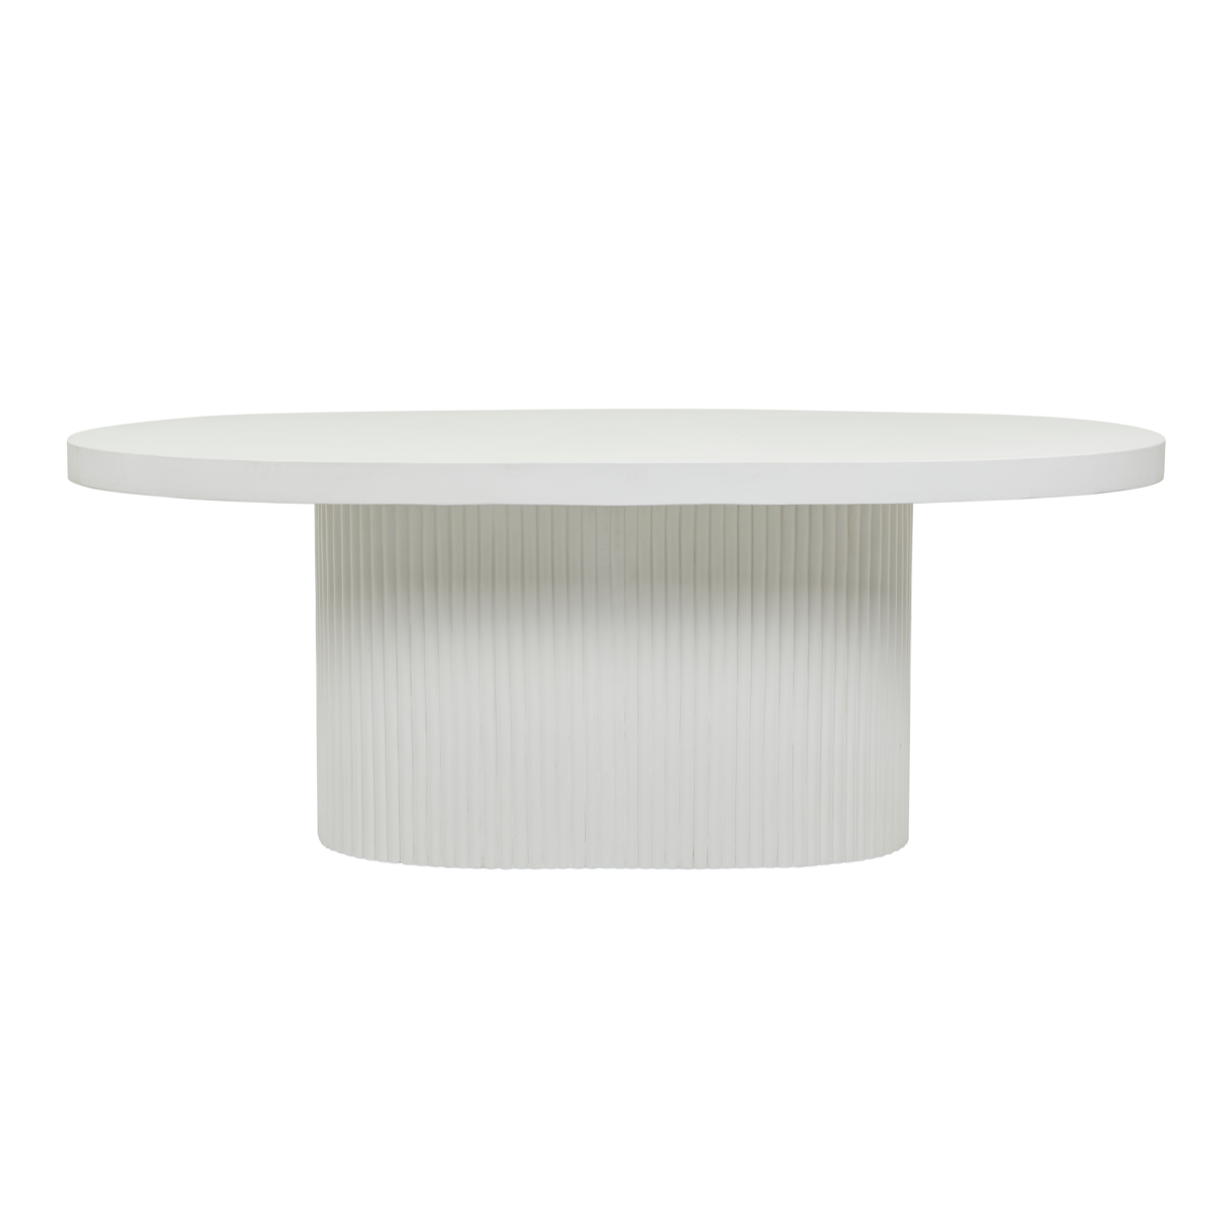 Ossa Ribbed Oval Patio Dining Table